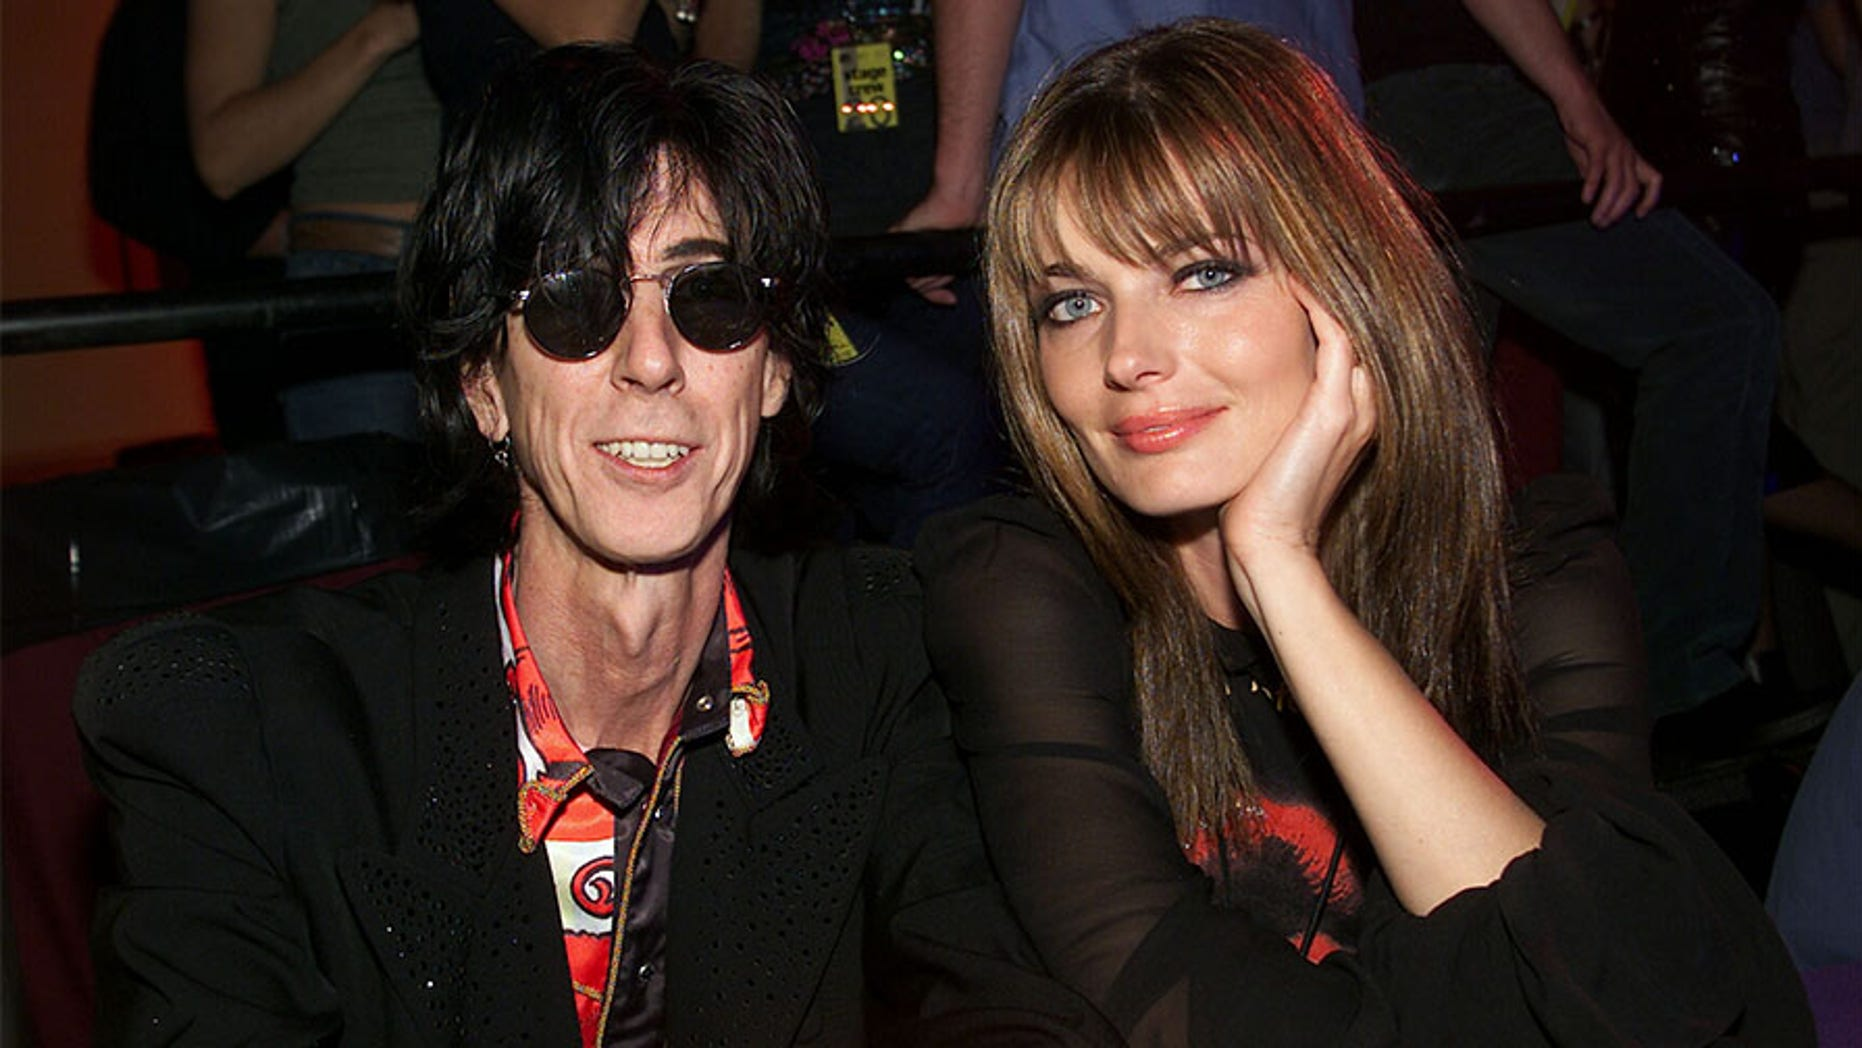 Ric Ocasek and Paulina Porizkova in a 2001 file photo. Porizkova shocked fans when she previously announced the split on Instagram.